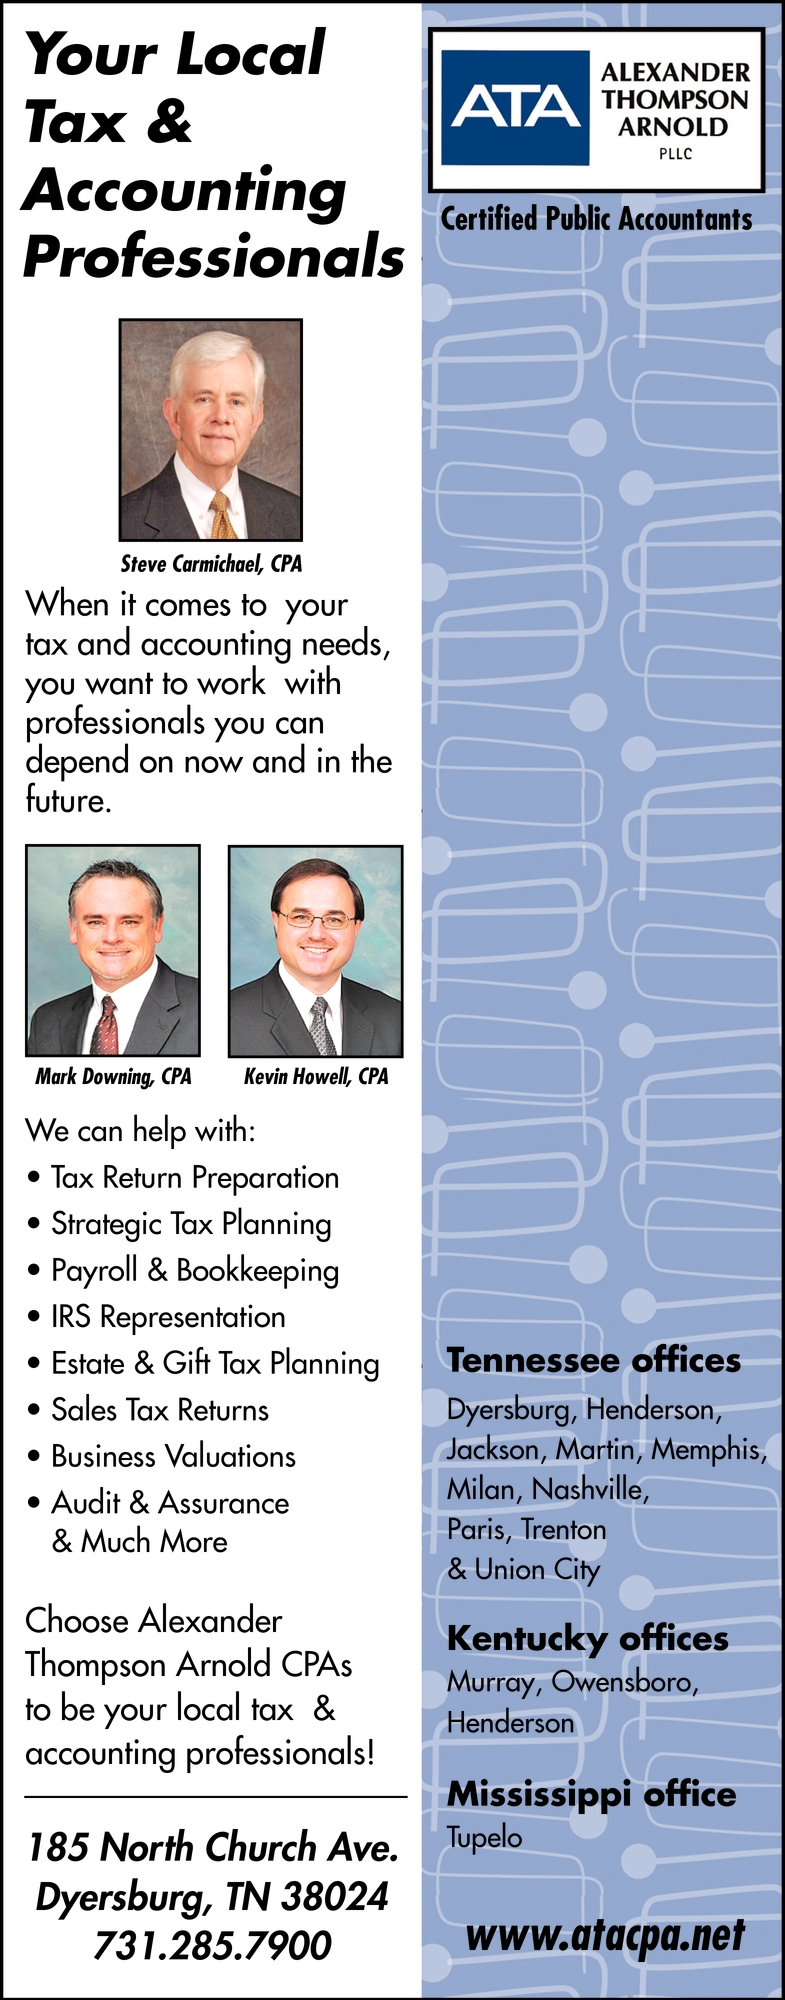 Your Local Tax & Accounting Professionals